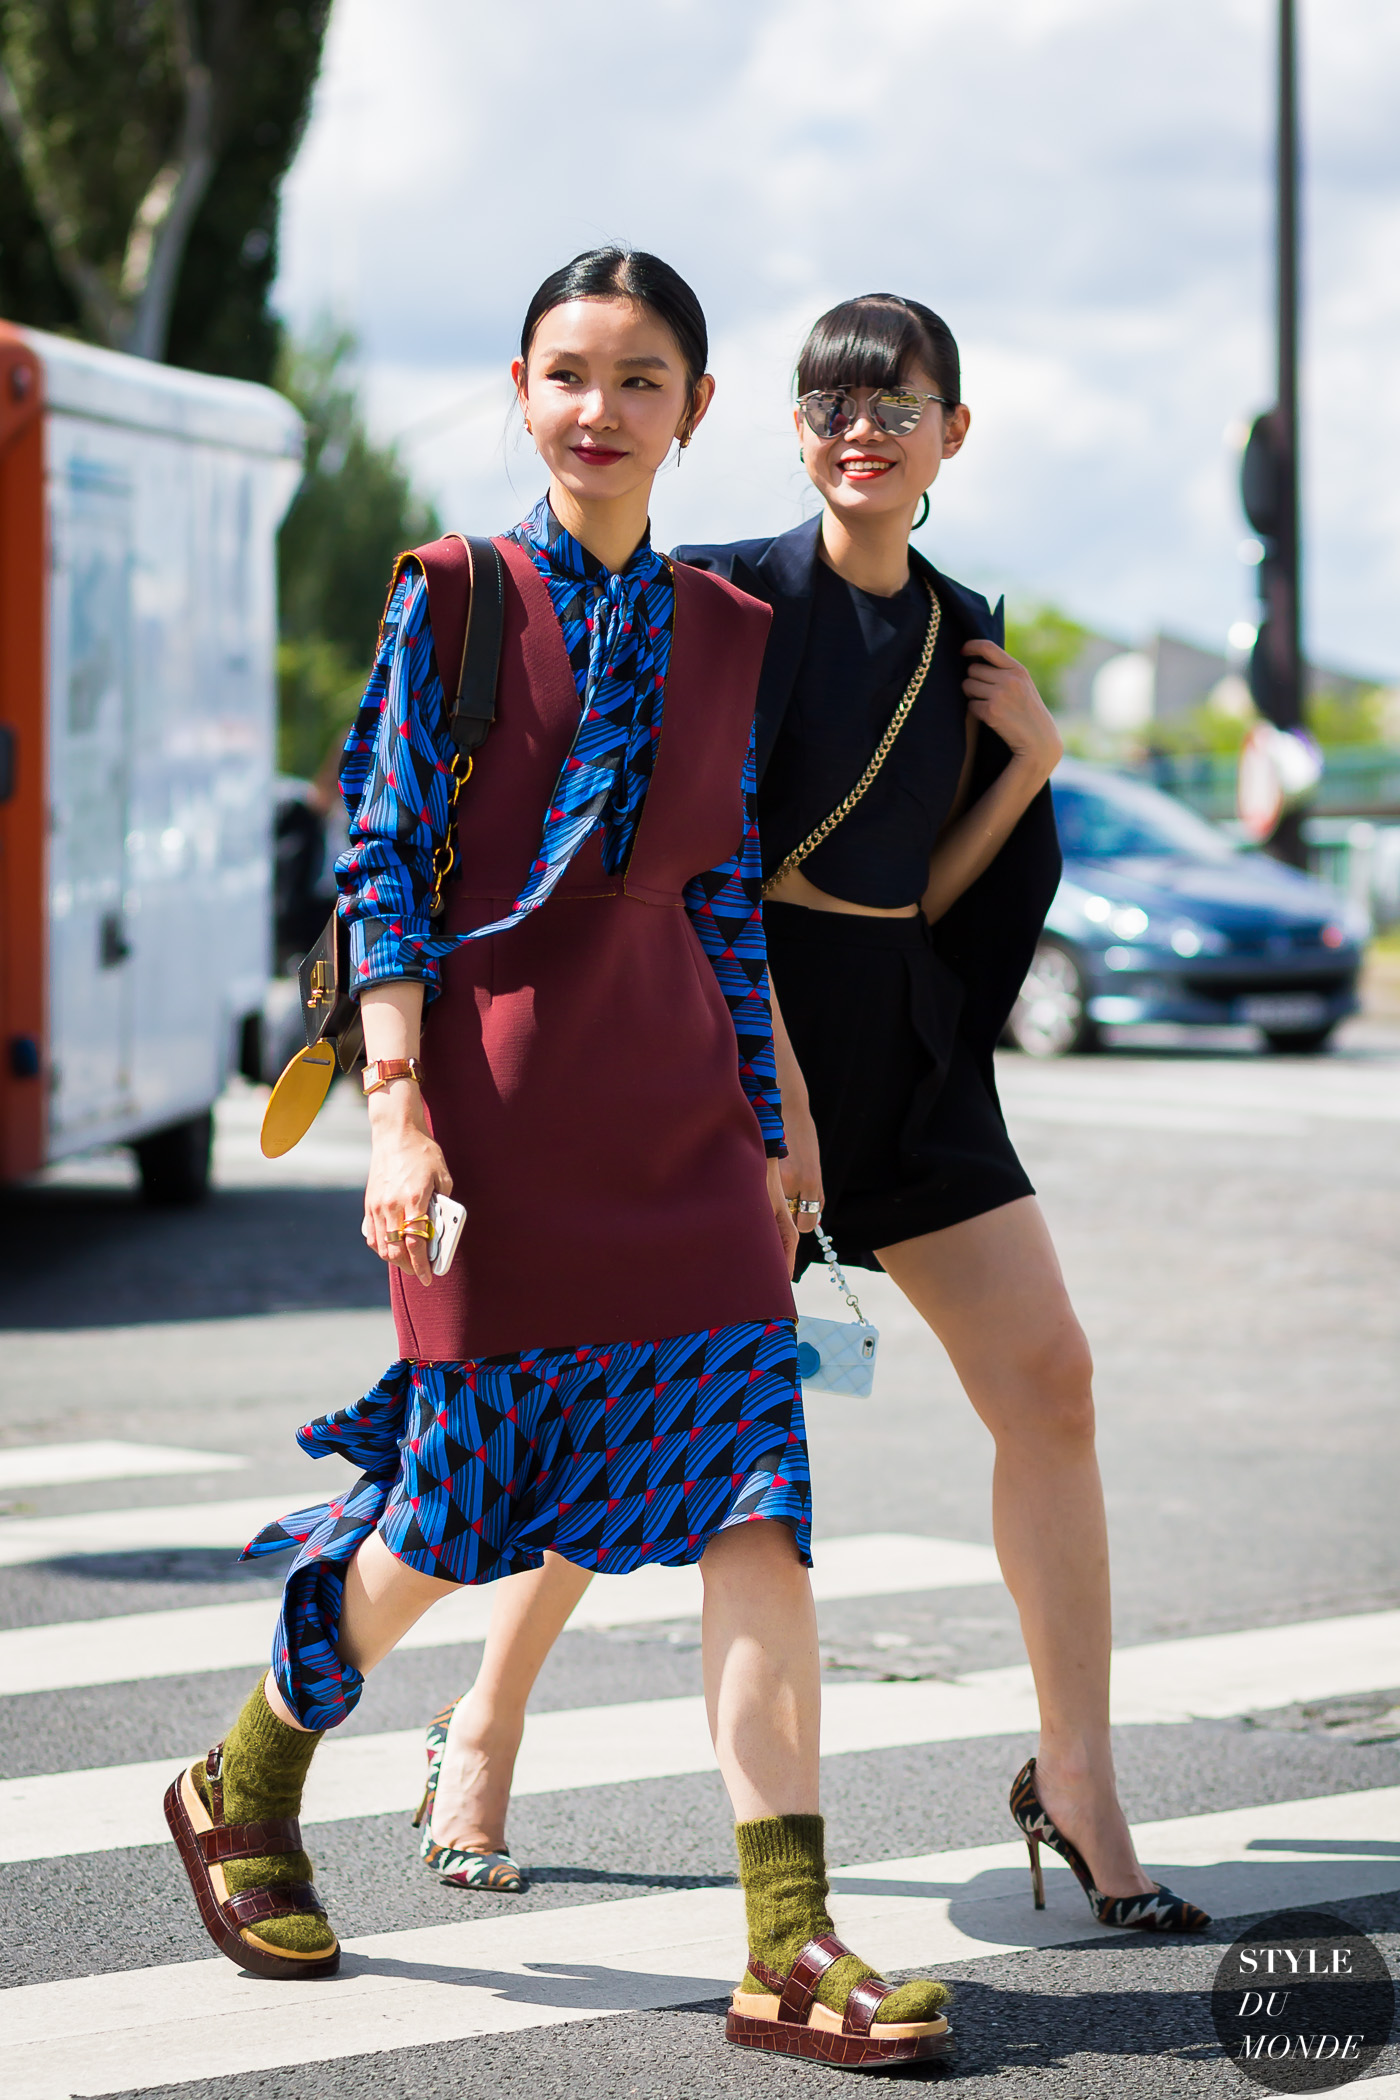 Sherry Shen and Leaf Greener Street Style Street Fashion Streetsnaps by STYLEDUMONDE Street Style Fashion Photography